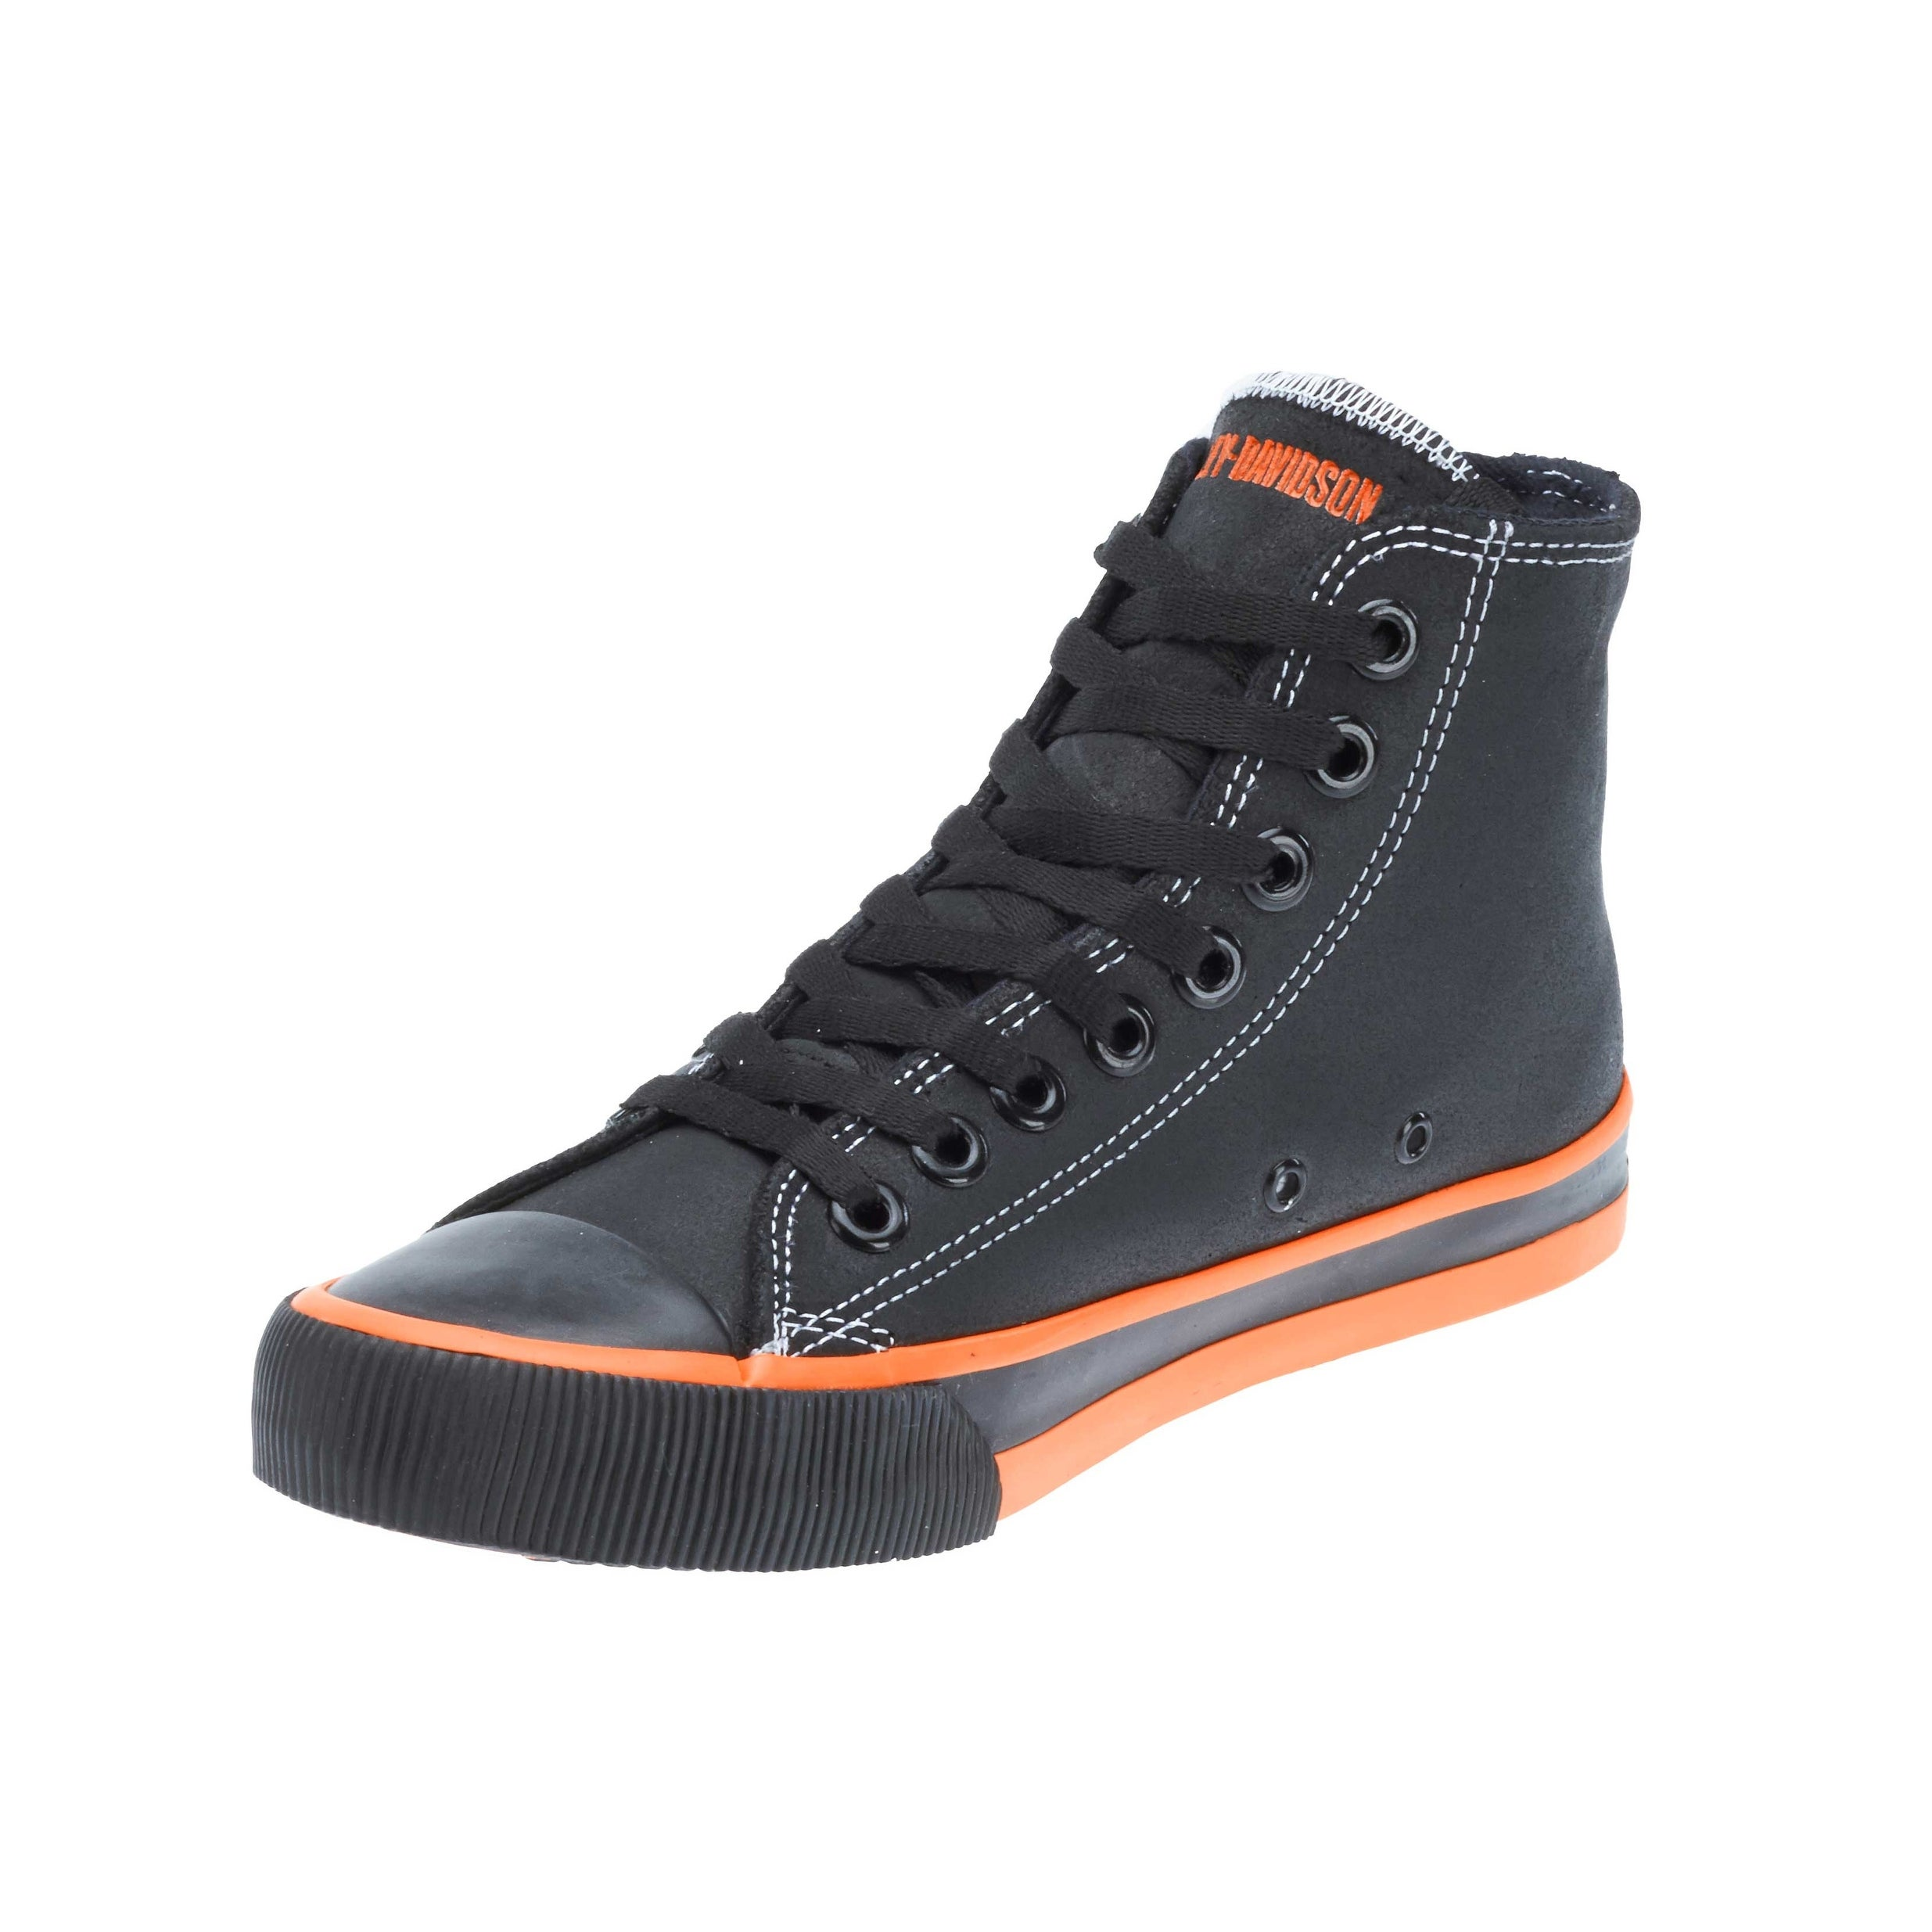 2c0e016f12c1 Shop Harley-Davidson Men s Nathan Sneaker - Free Shipping Today - Overstock  - 27189176